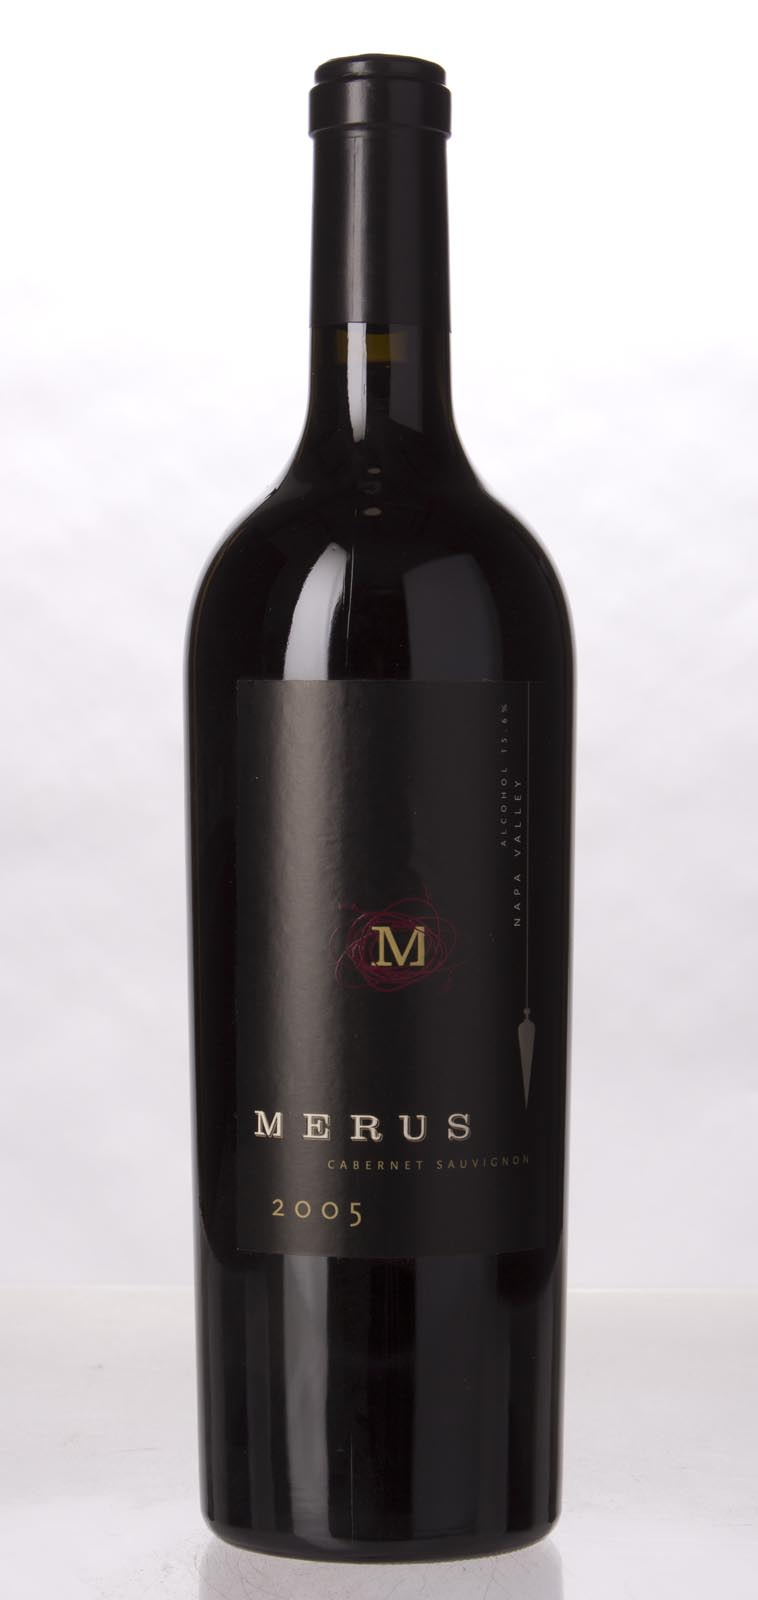 Merus Cabernet Sauvignon Napa Valley 2005, 750mL (WA96, WS96) from The BPW - Merchants of rare and fine wines.